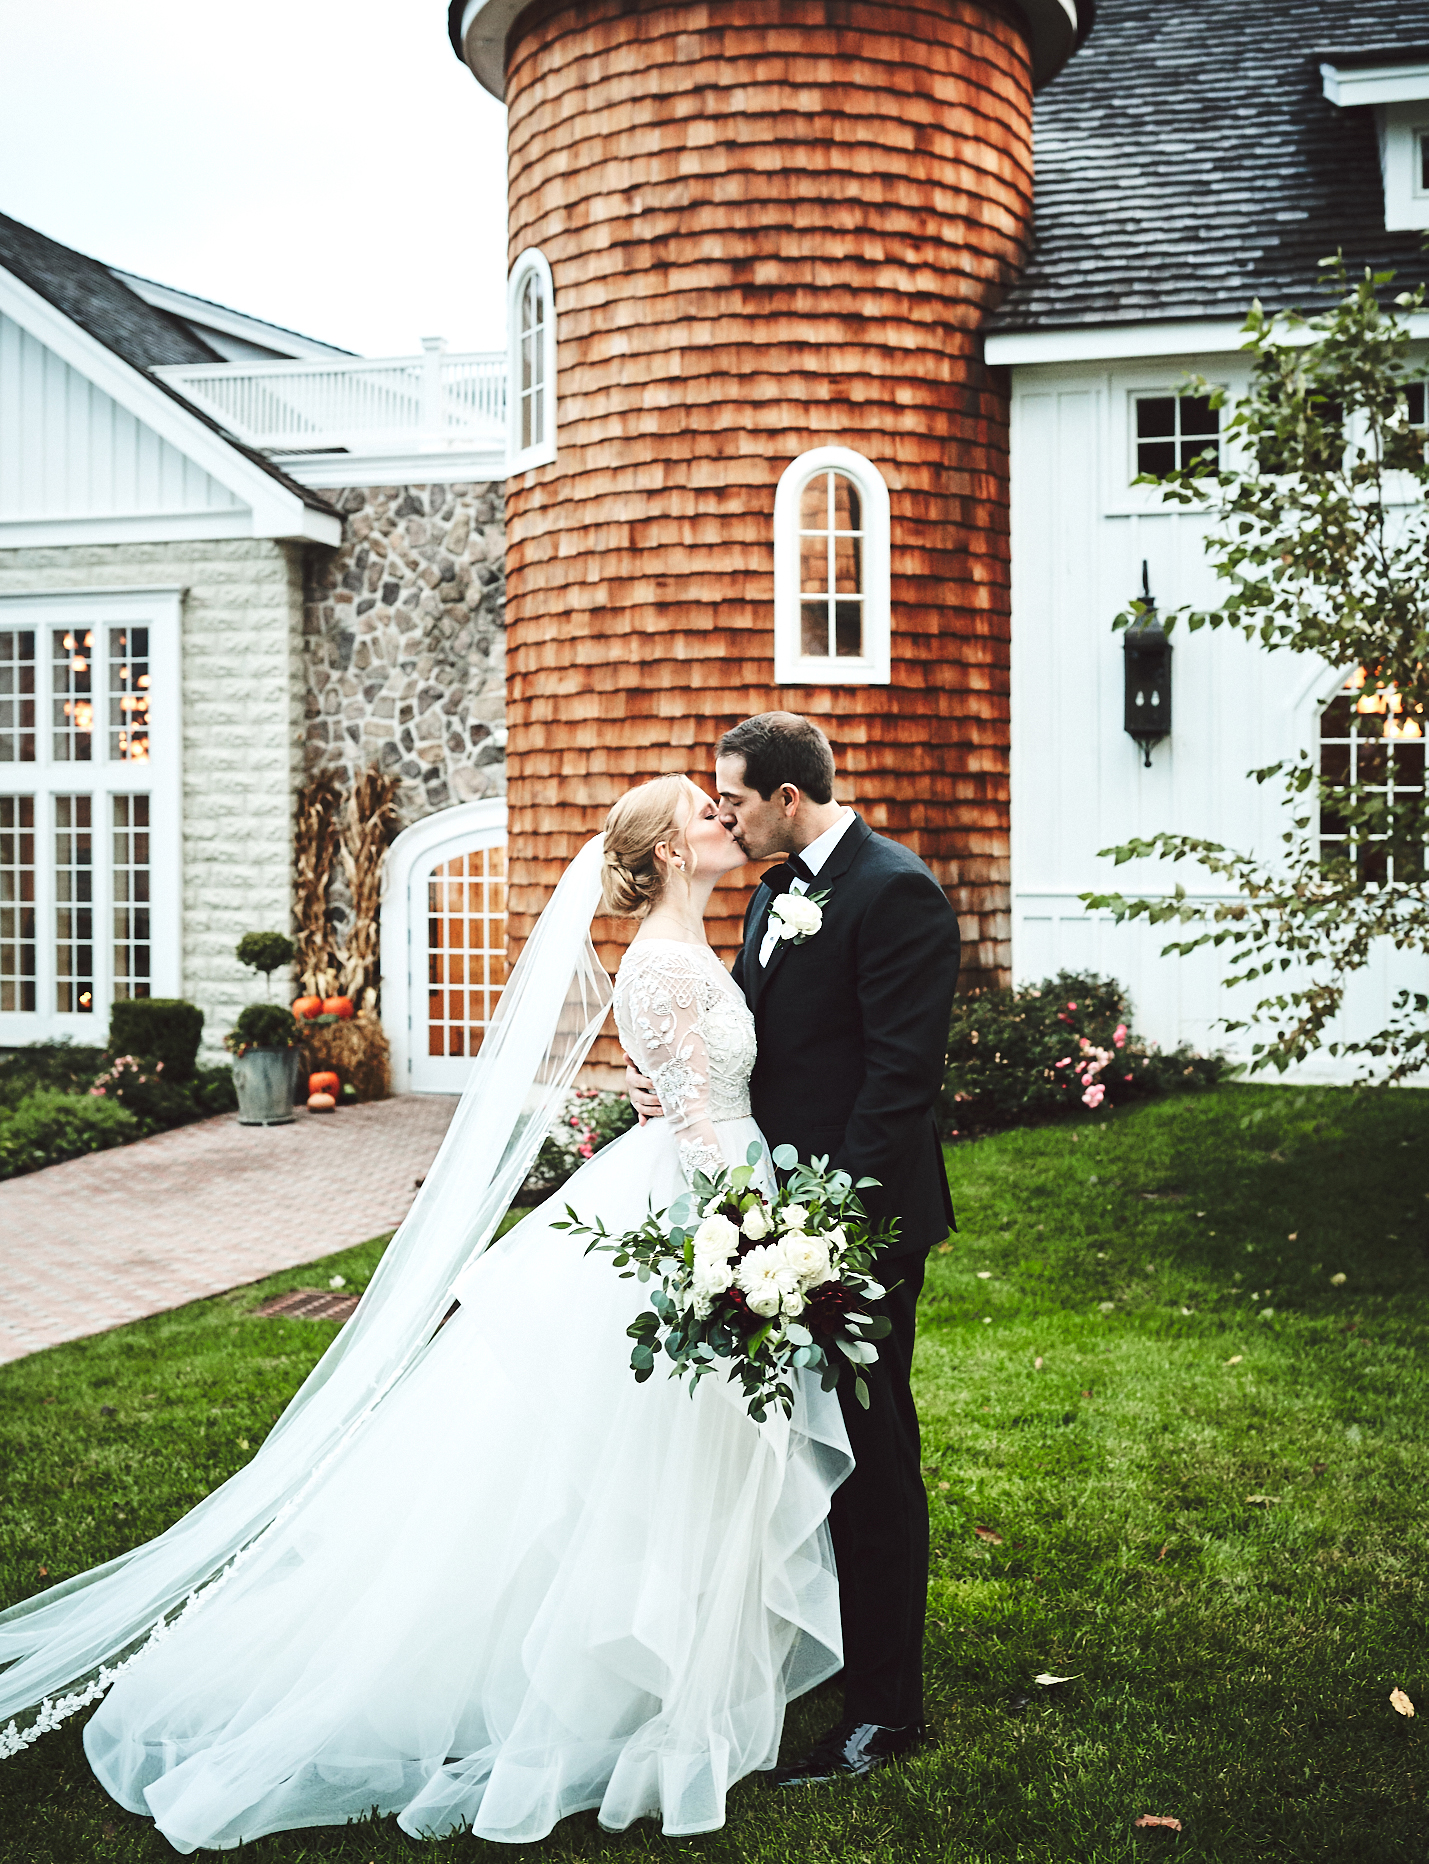 181027_TheRylandInnFallWeddingPhotography_NJWeddingPhotographer_By_BriJohnsonWeddings_0120.jpg